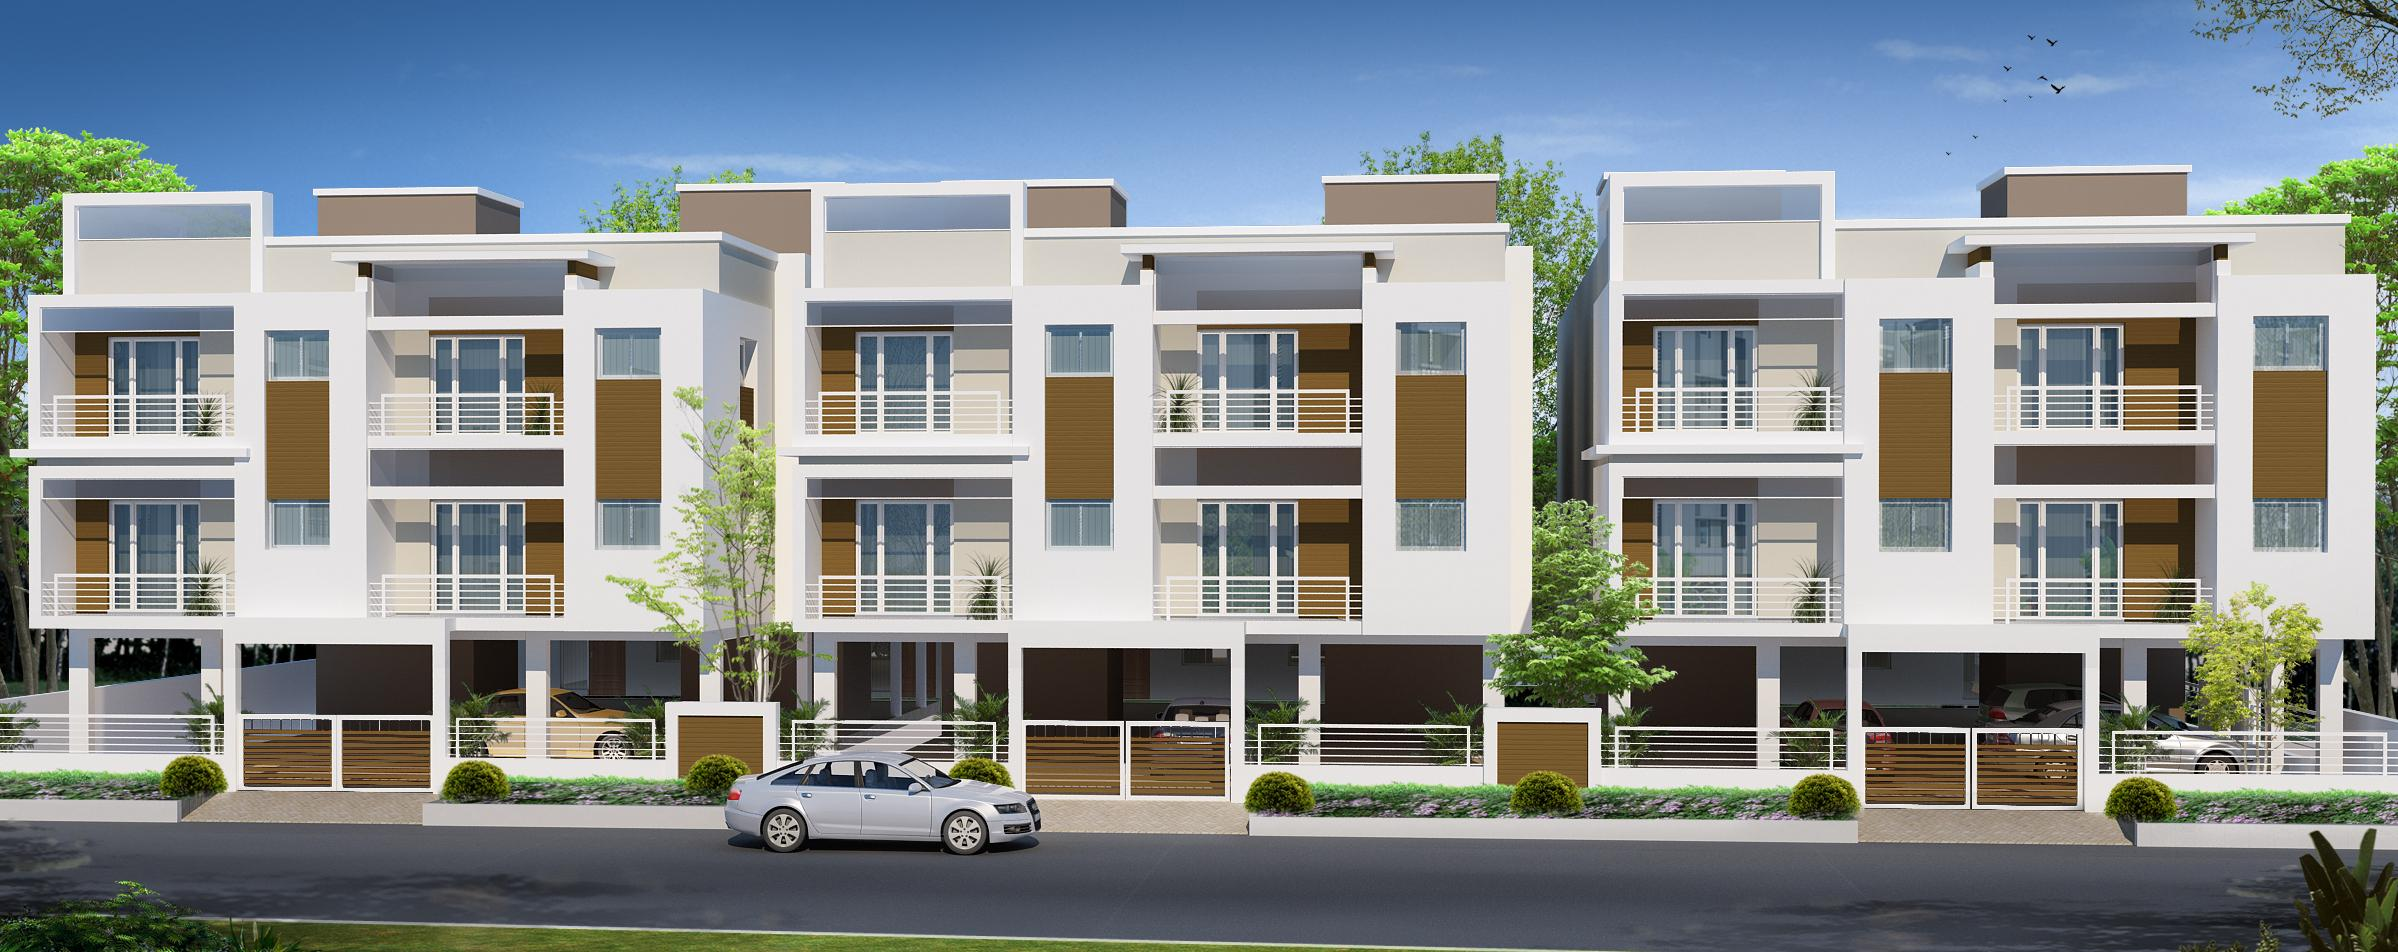 Row Housing ELEVATION Design GharExpert